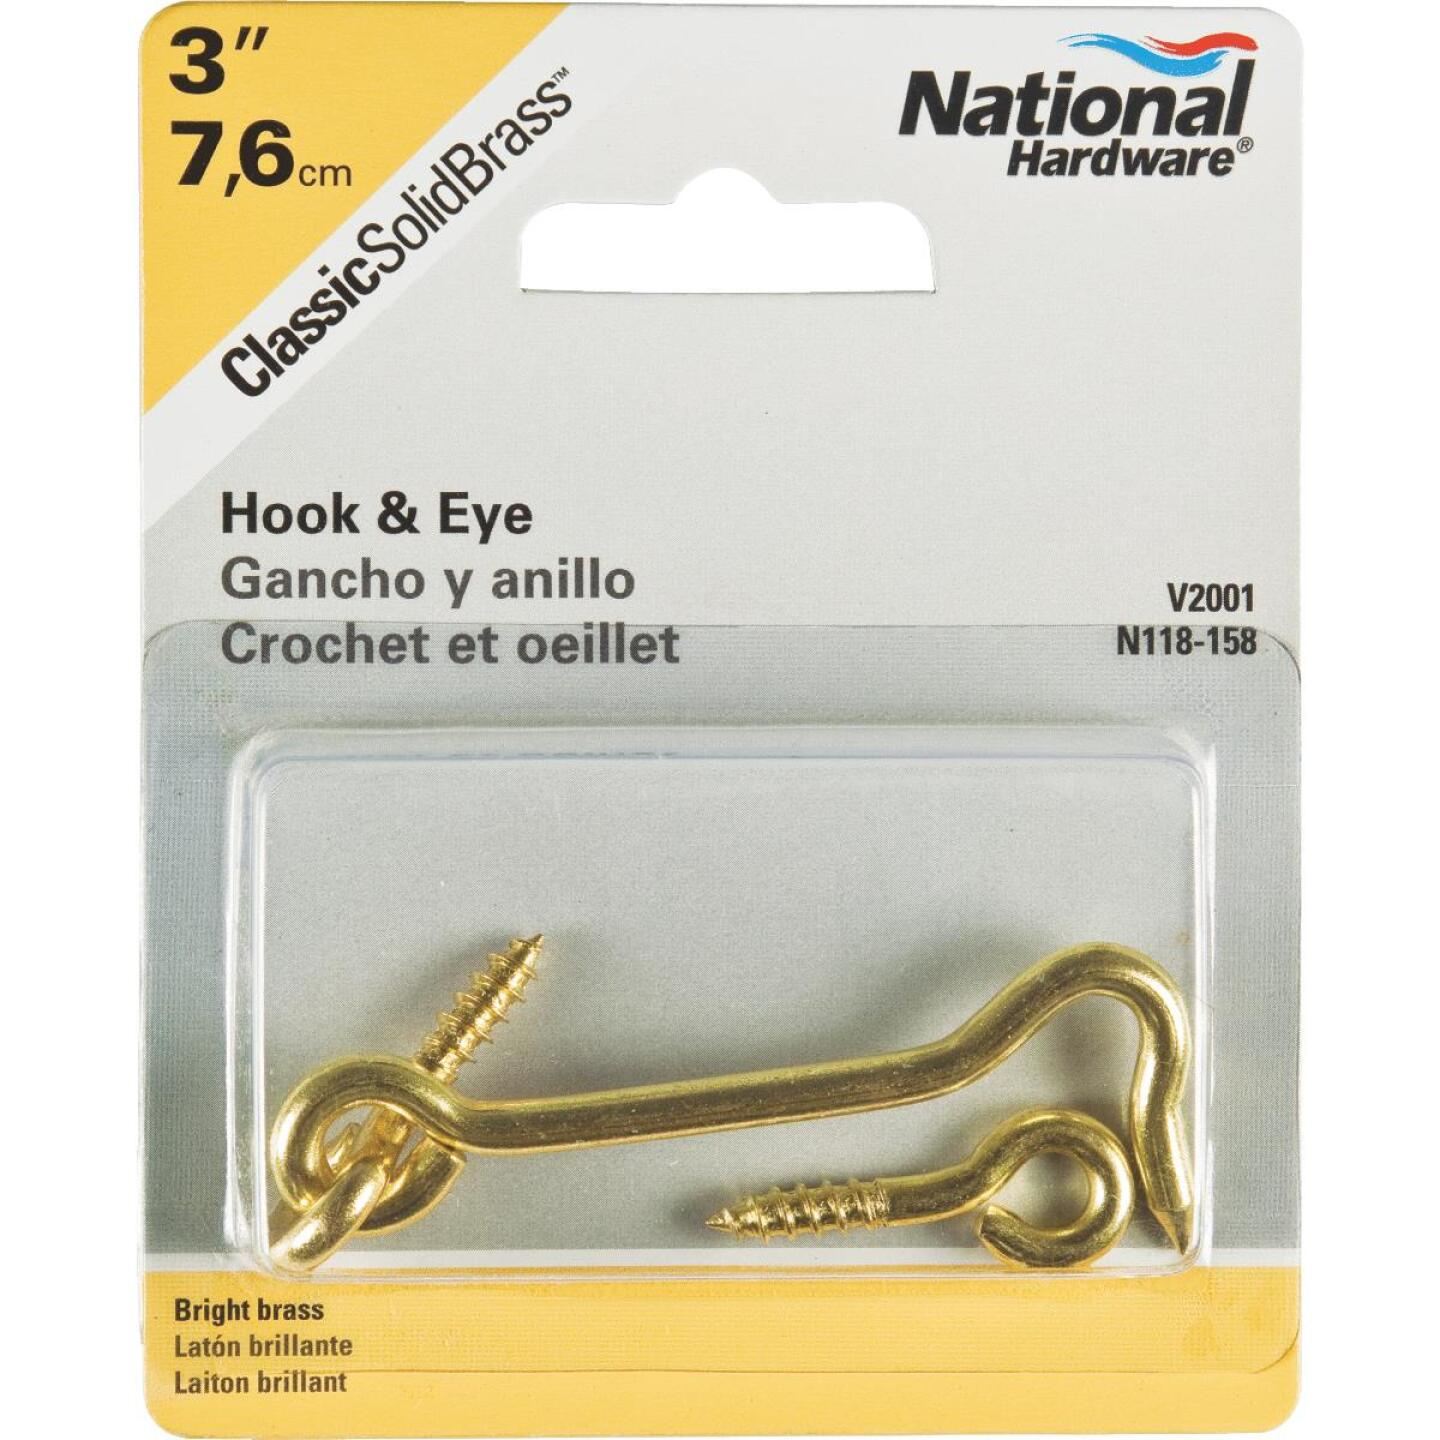 National Solid Brass 3 In. Hook & Eye Bolt Image 2